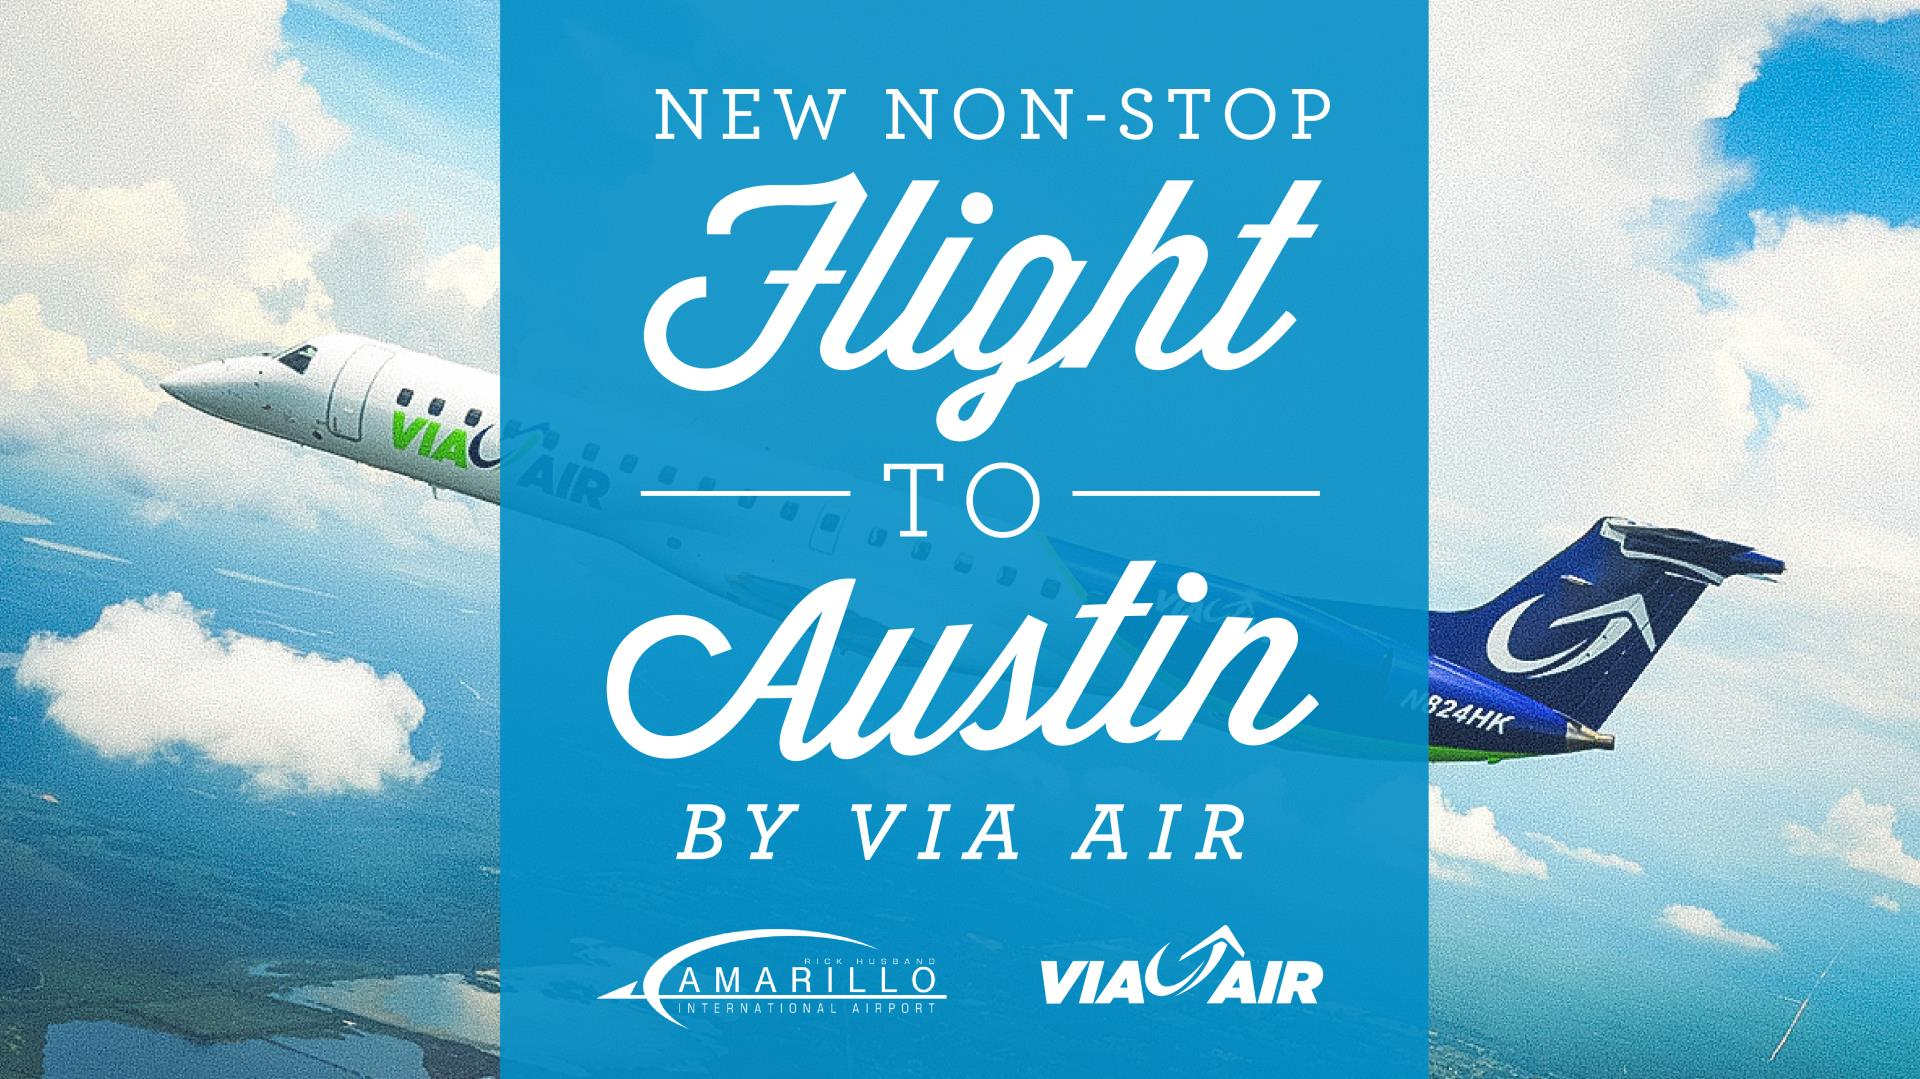 New Direct Flight To-and-From Austin Announced